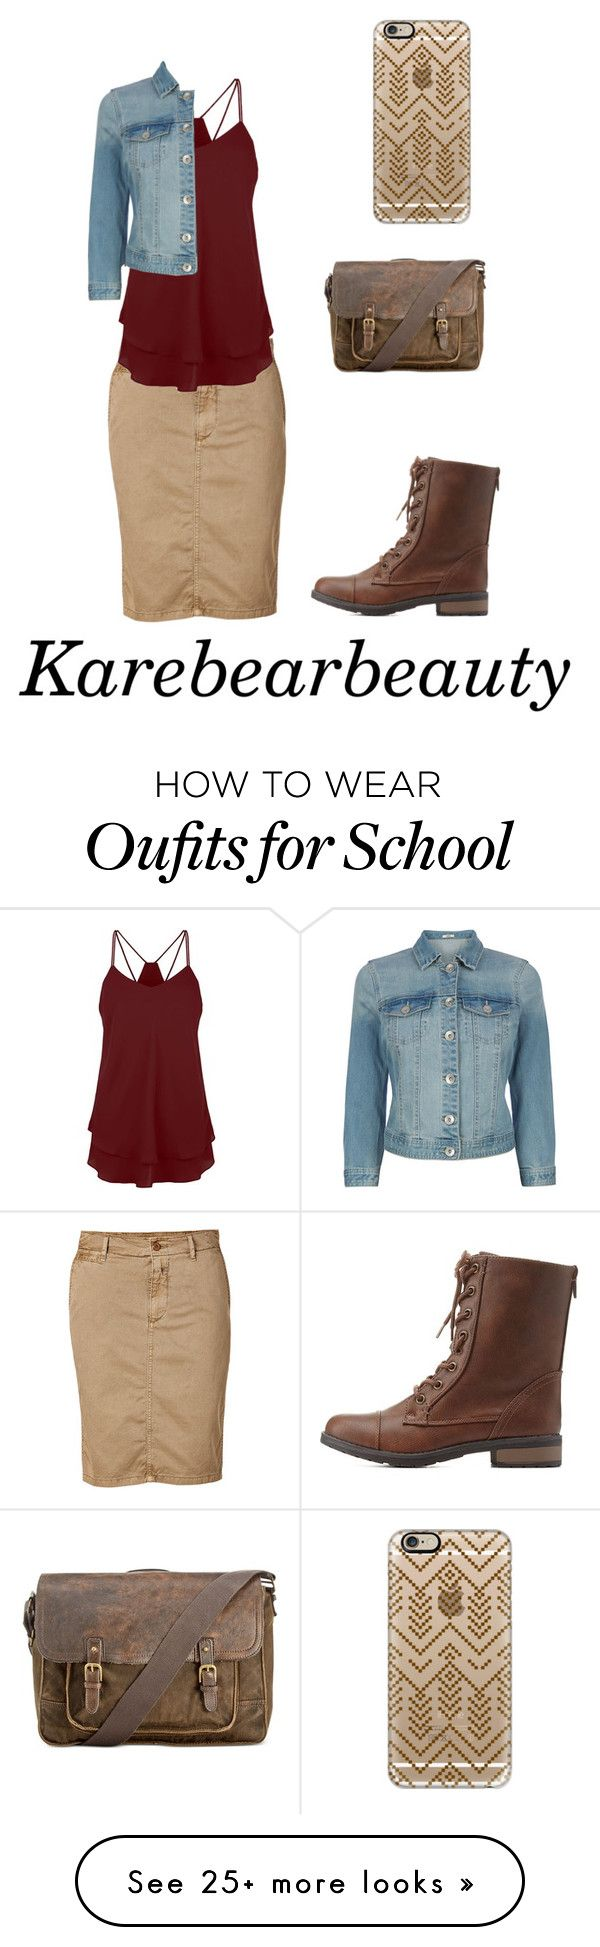 """School"" by karebearbeauty on Polyvore featuring Closed, Oasis, Charlotte Russe, Patricia Nash and Casetify"